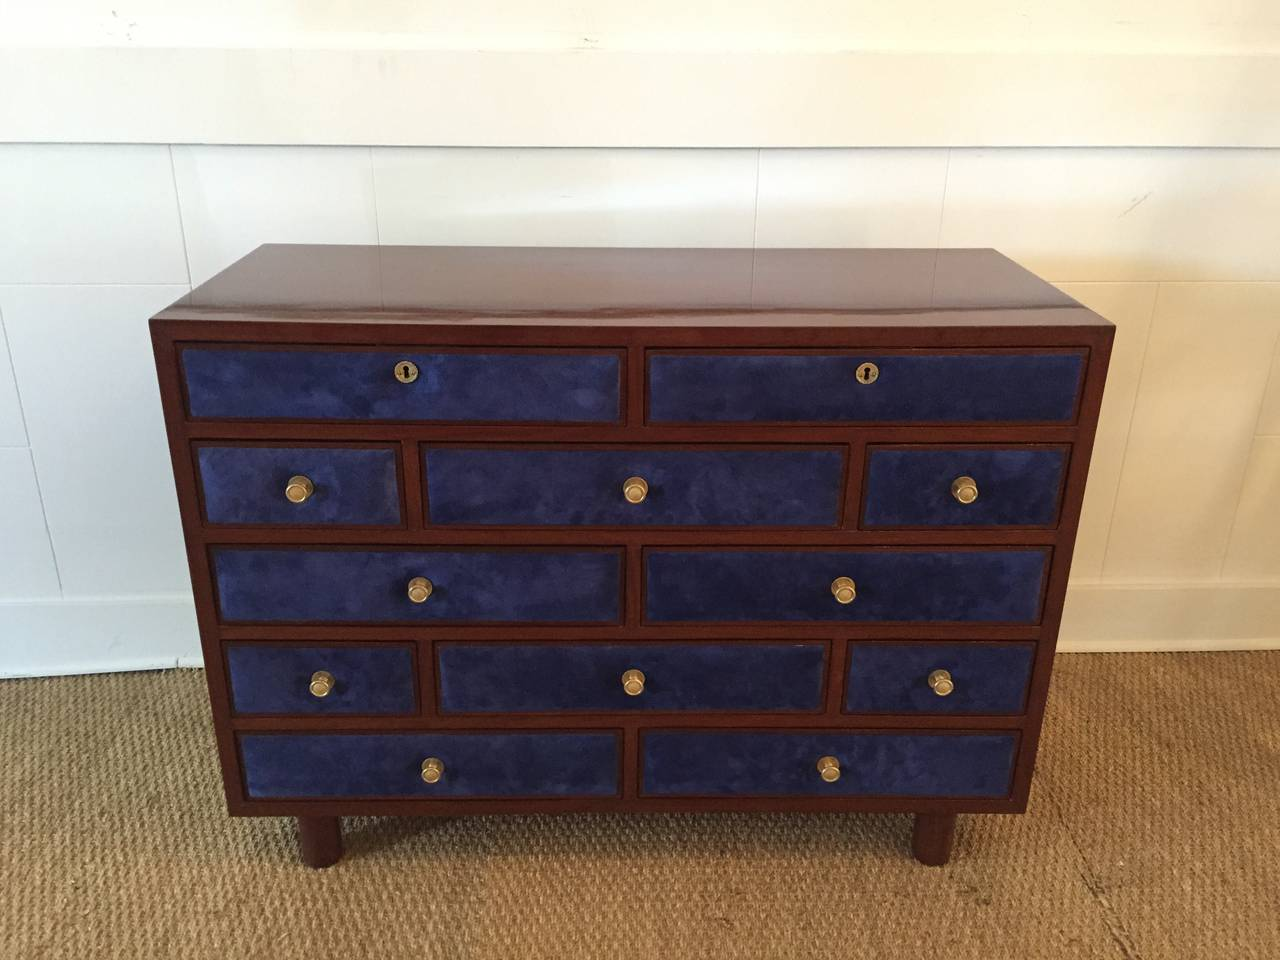 Art Deco Maison Jansen Chest of Drawers with Blue Suede and Gold-Plated Pulls For Sale